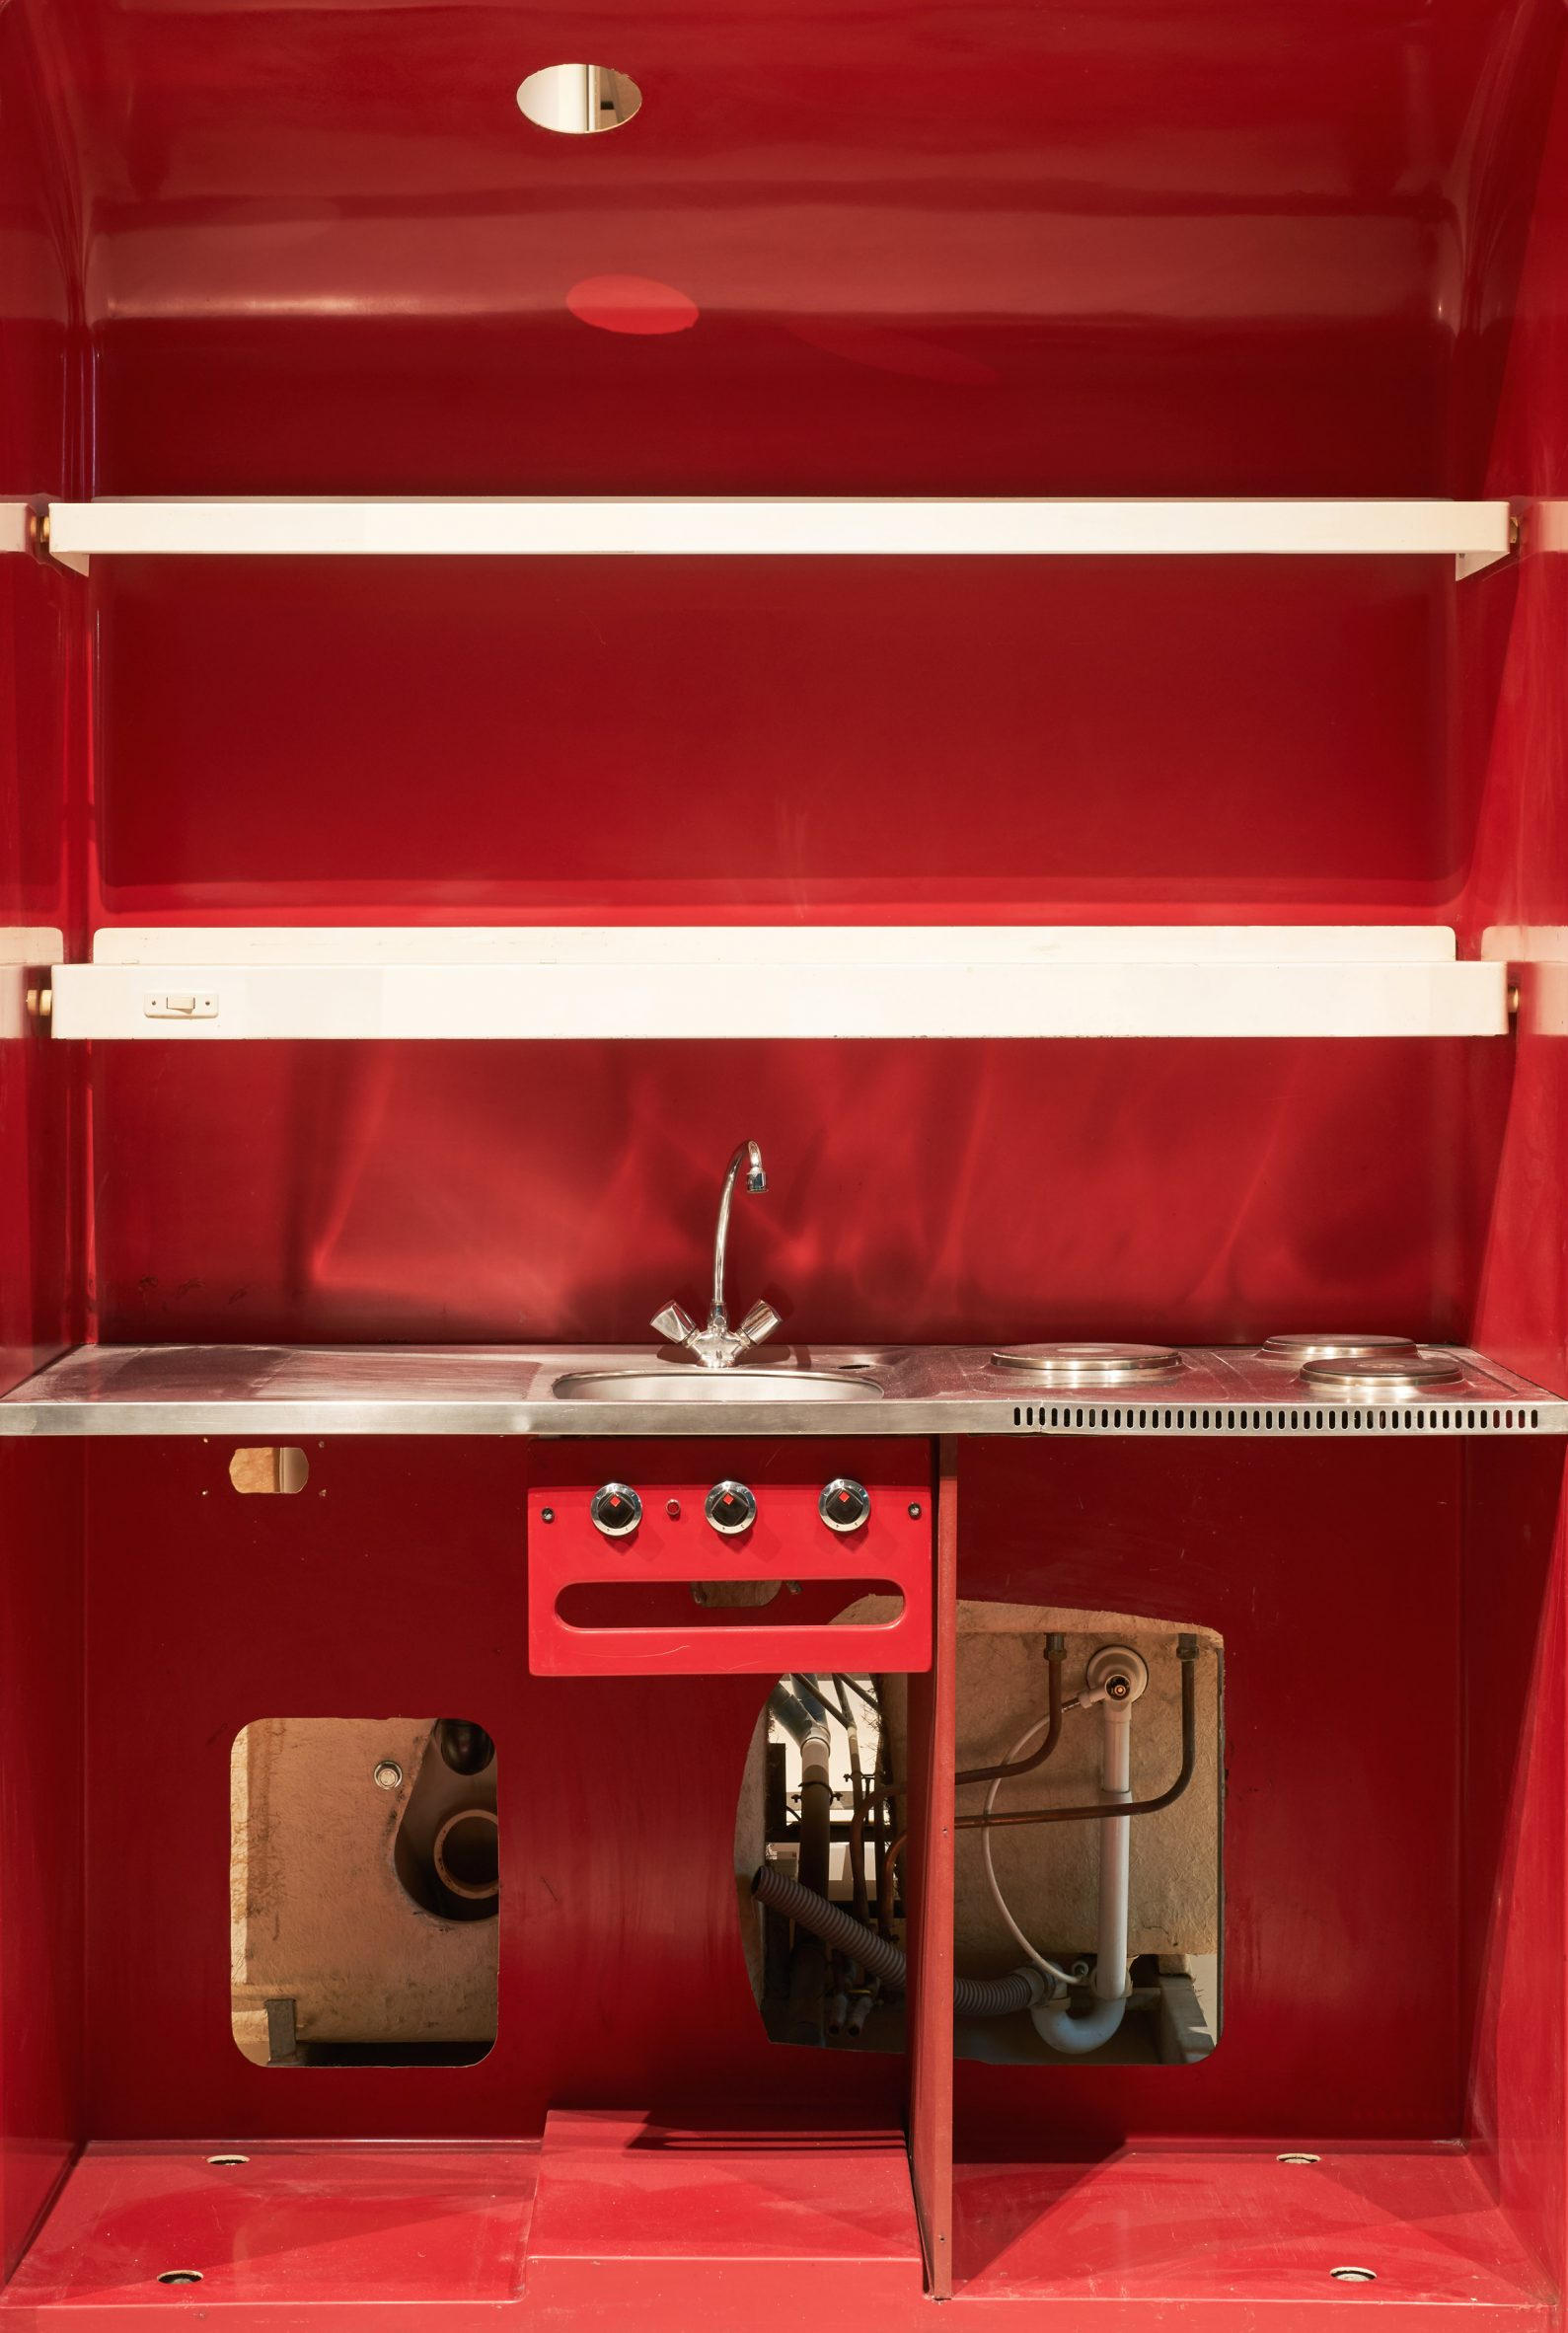 A red prefabricated kitchen